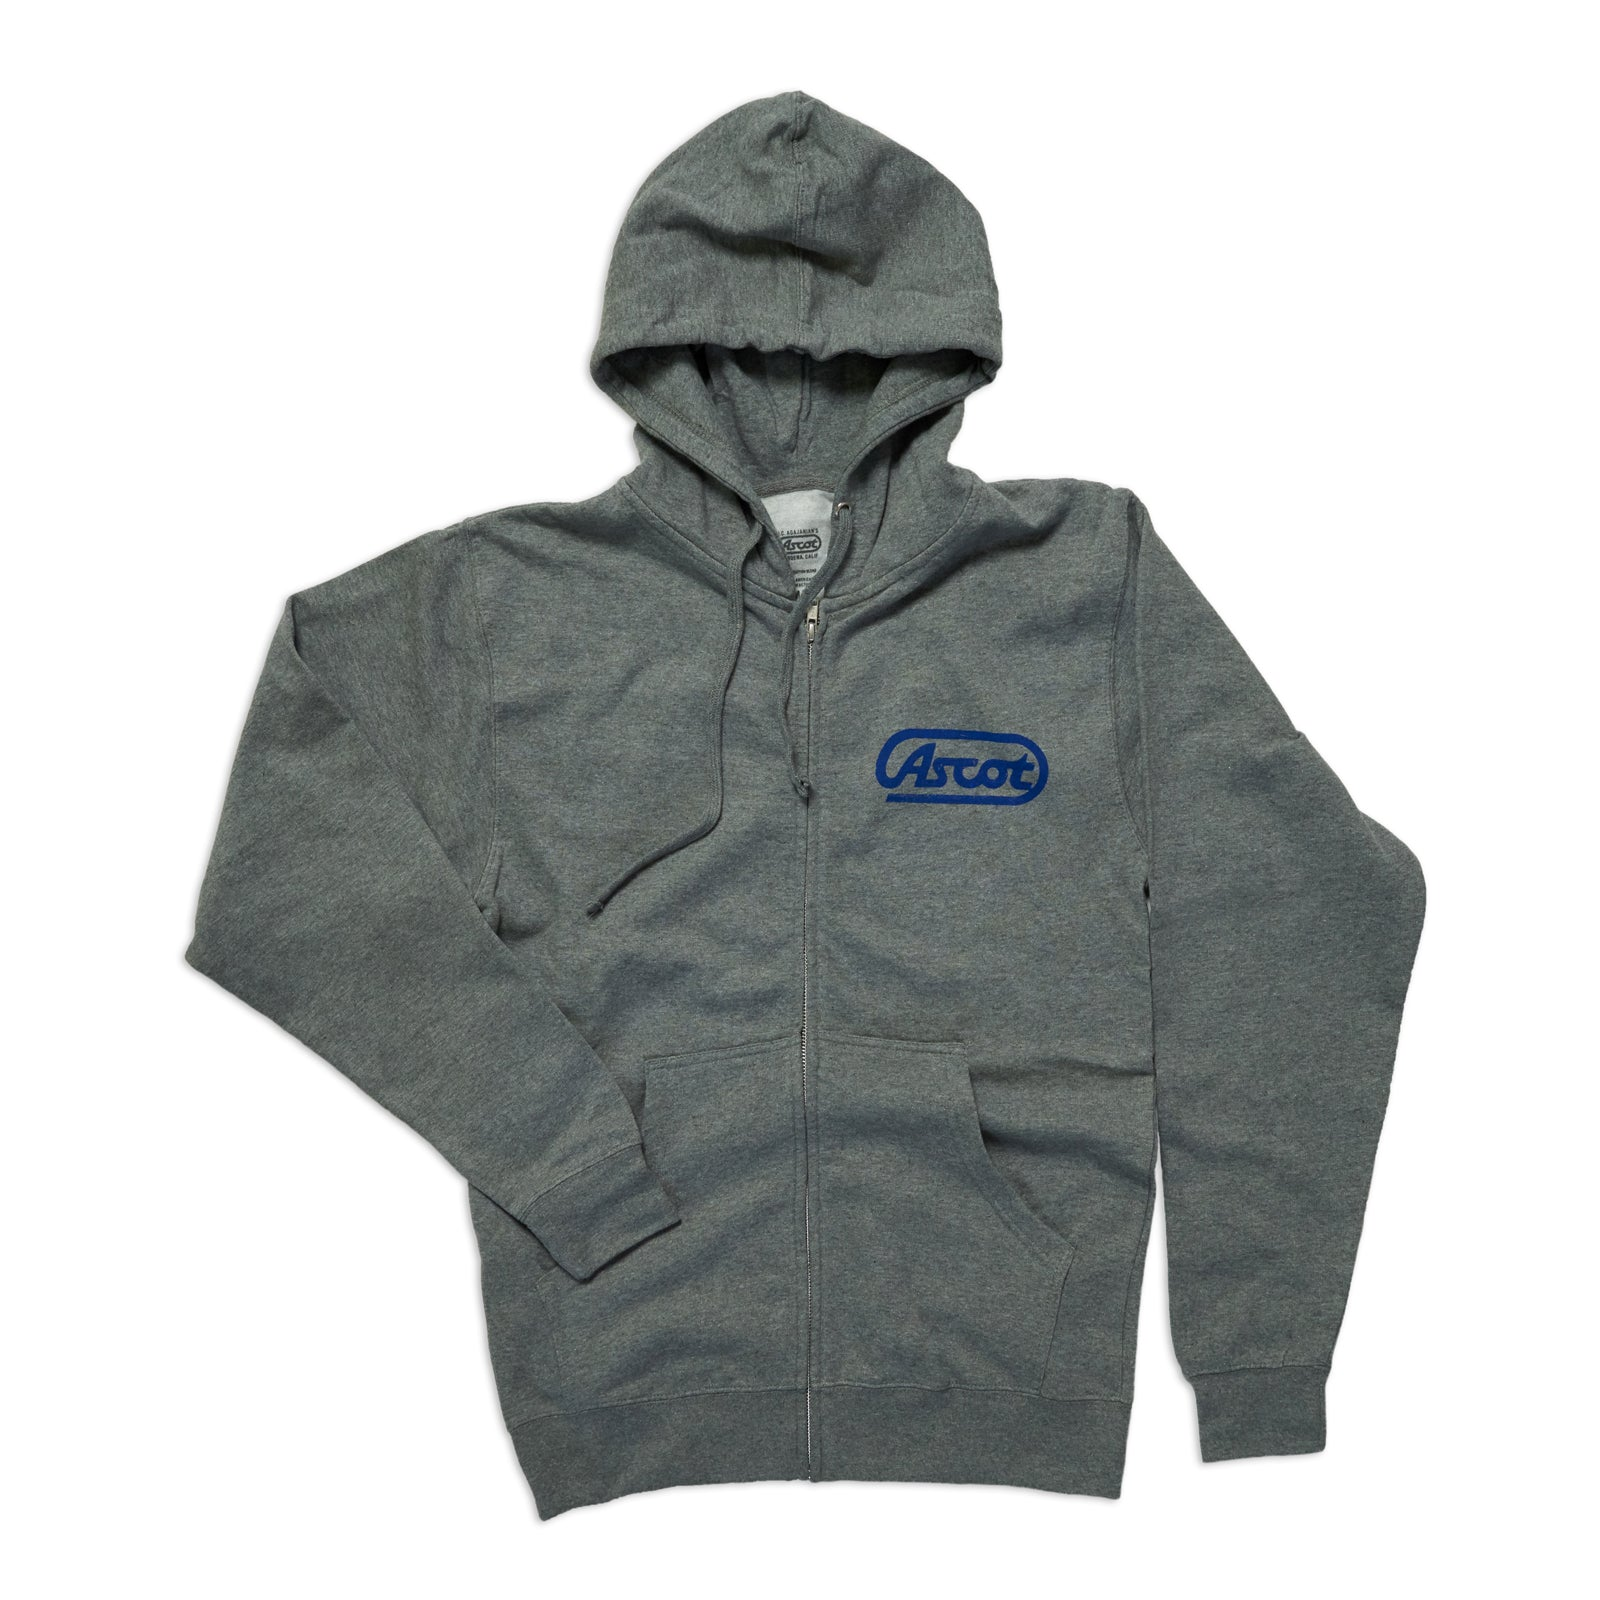 Ascot Zip Up - Heather Gray